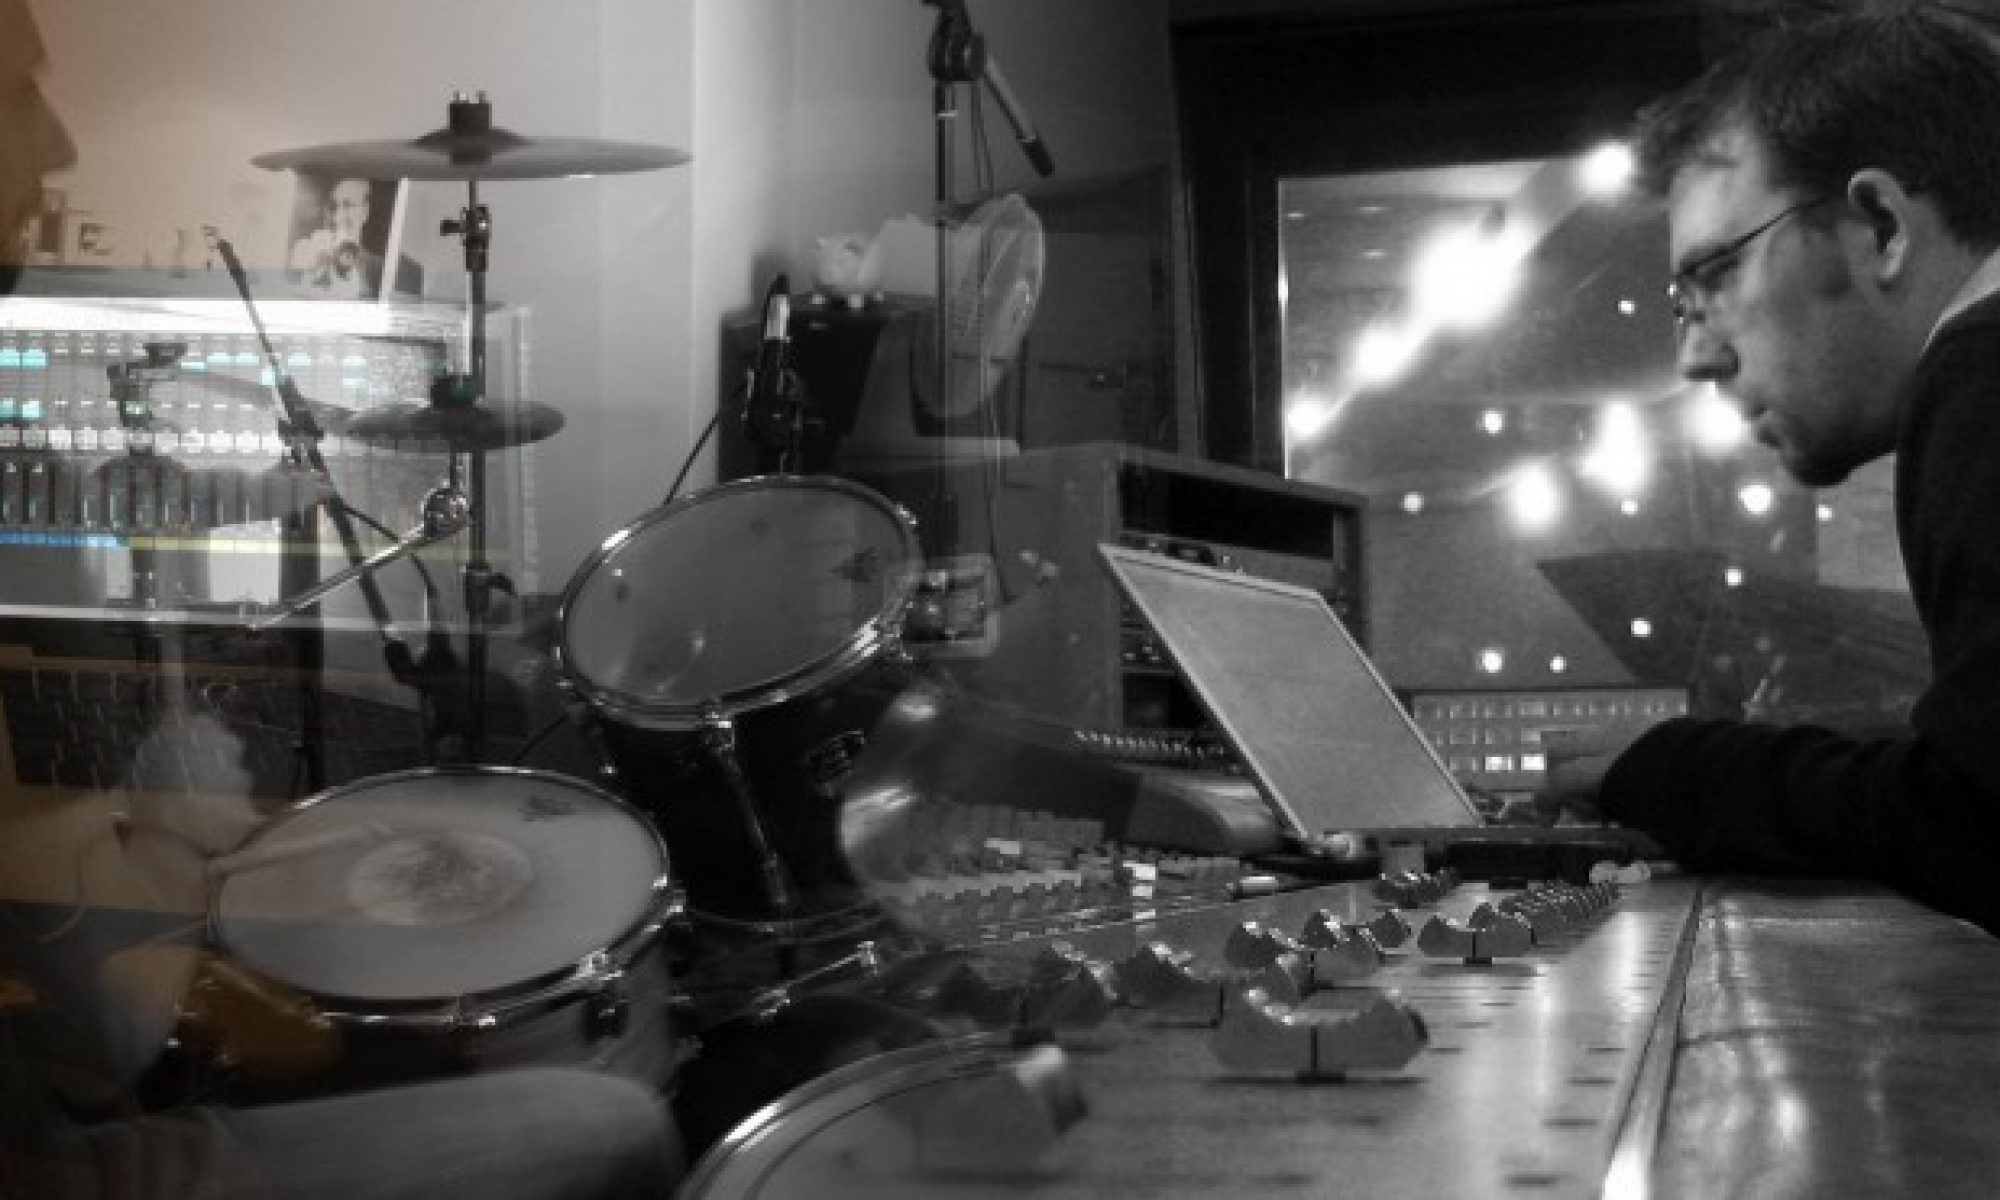 Studio Nyne - Mixing, Recording, Production in Derbyshire by Gareth Metcalf